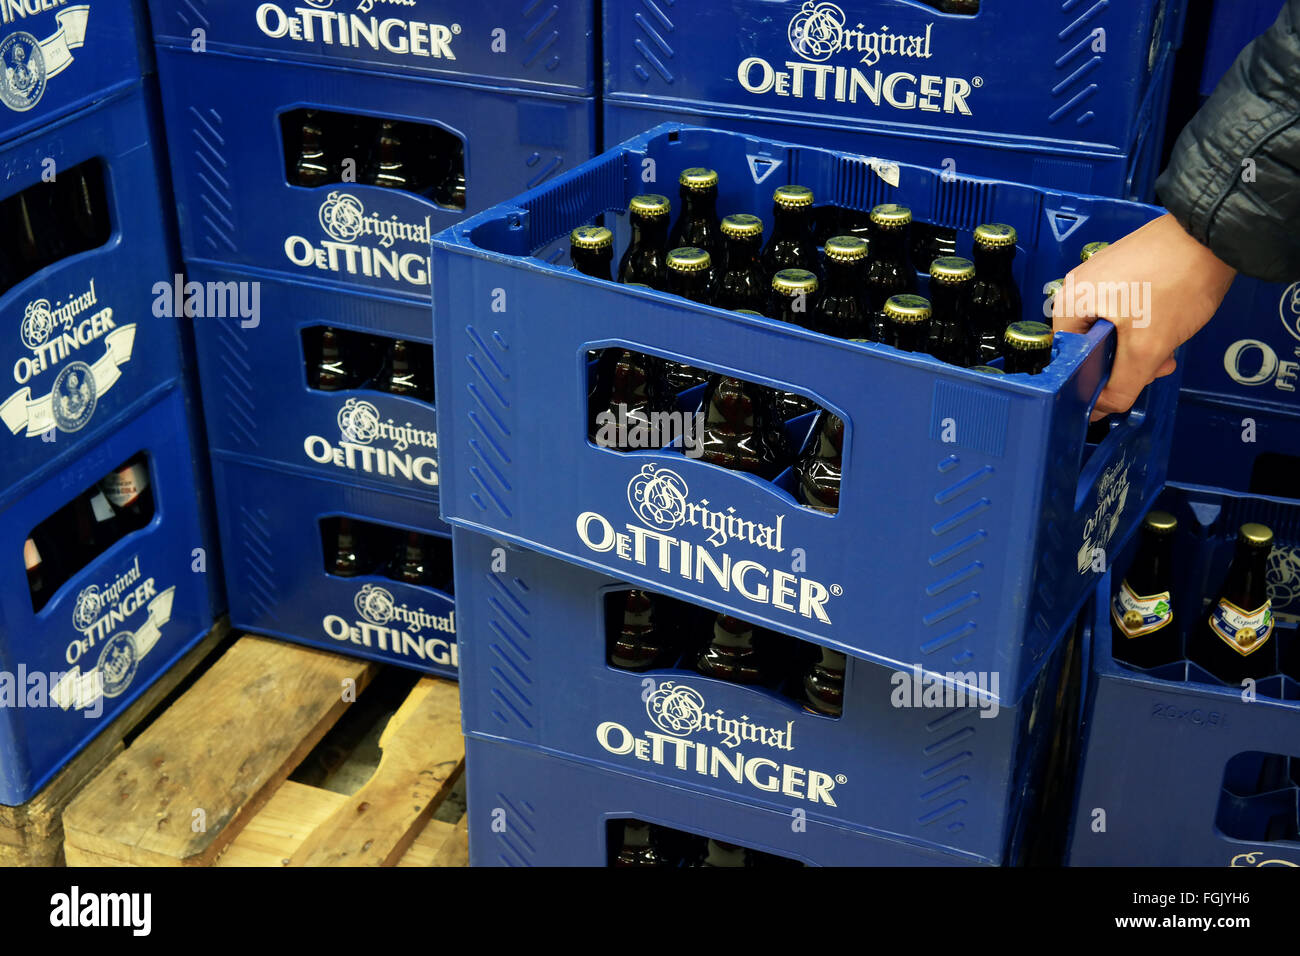 Stack of Oettinger beer crates in a Kaufland Hypermarket. - Stock Image